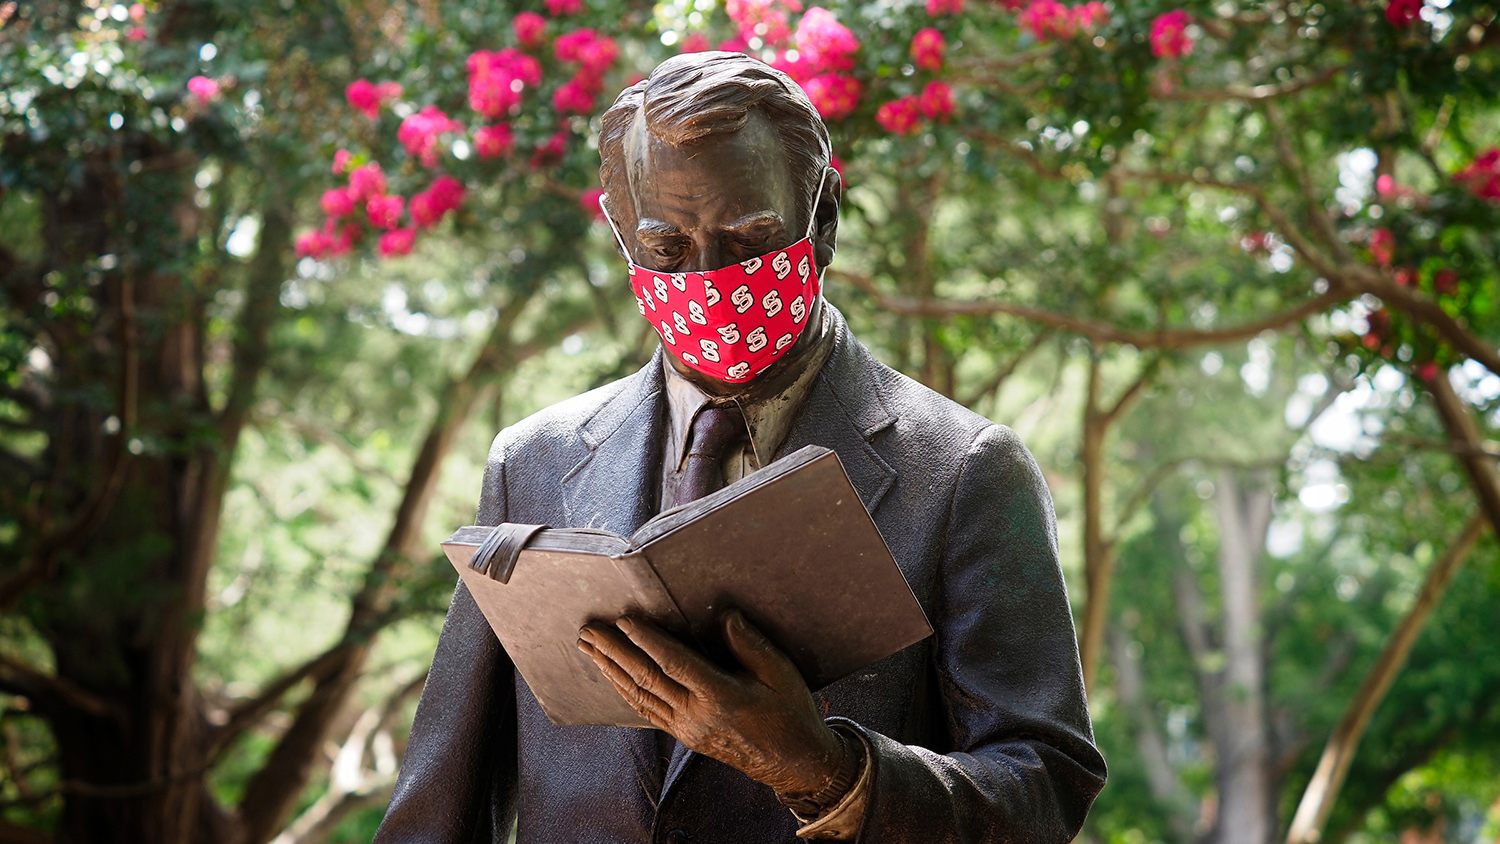 The strolling professor statue dons a protective mask